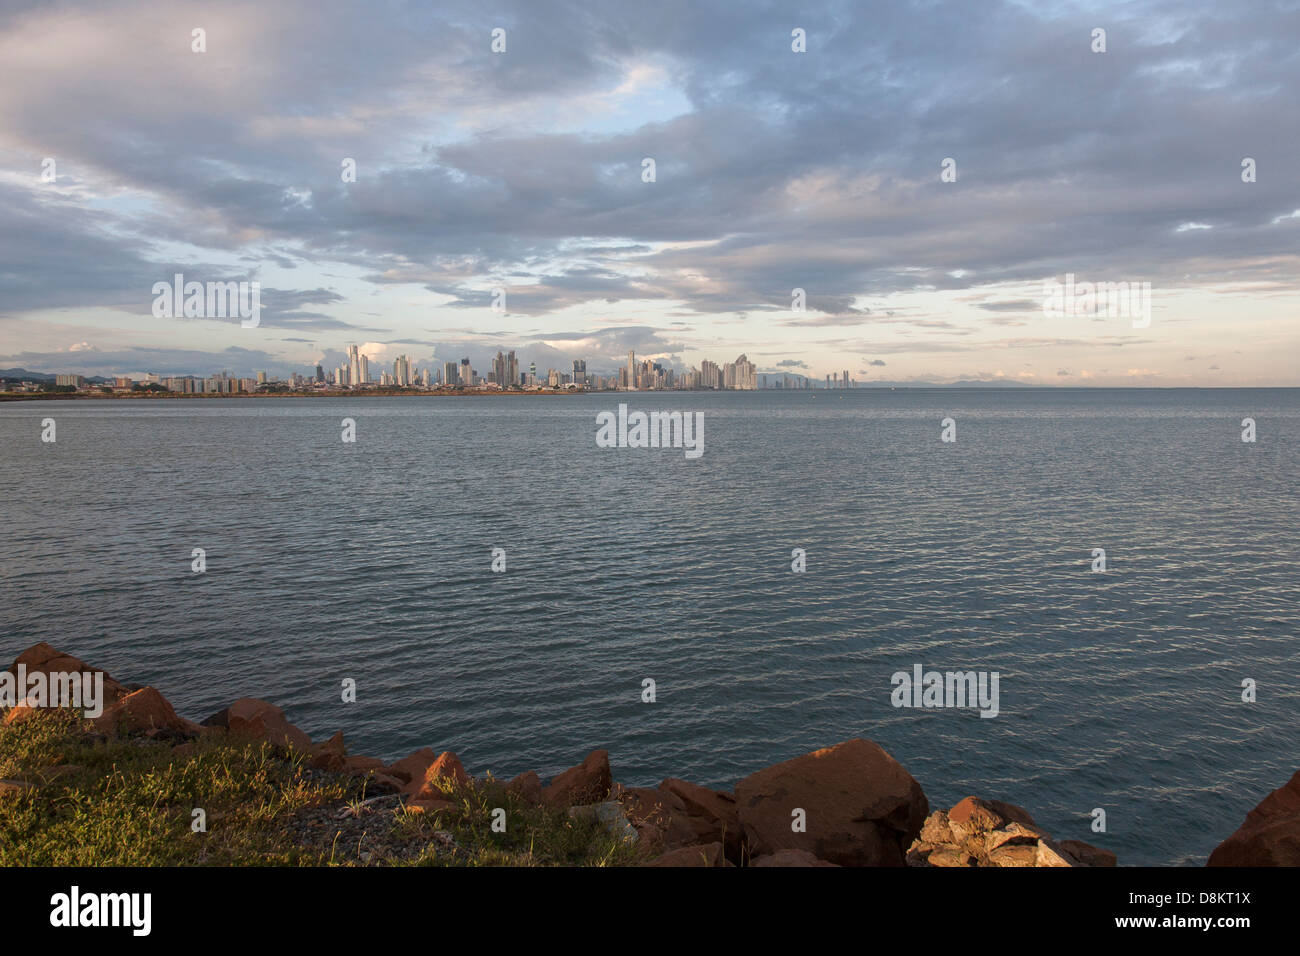 Panoramic view towards Downtown Panama City, Panama - Stock Image